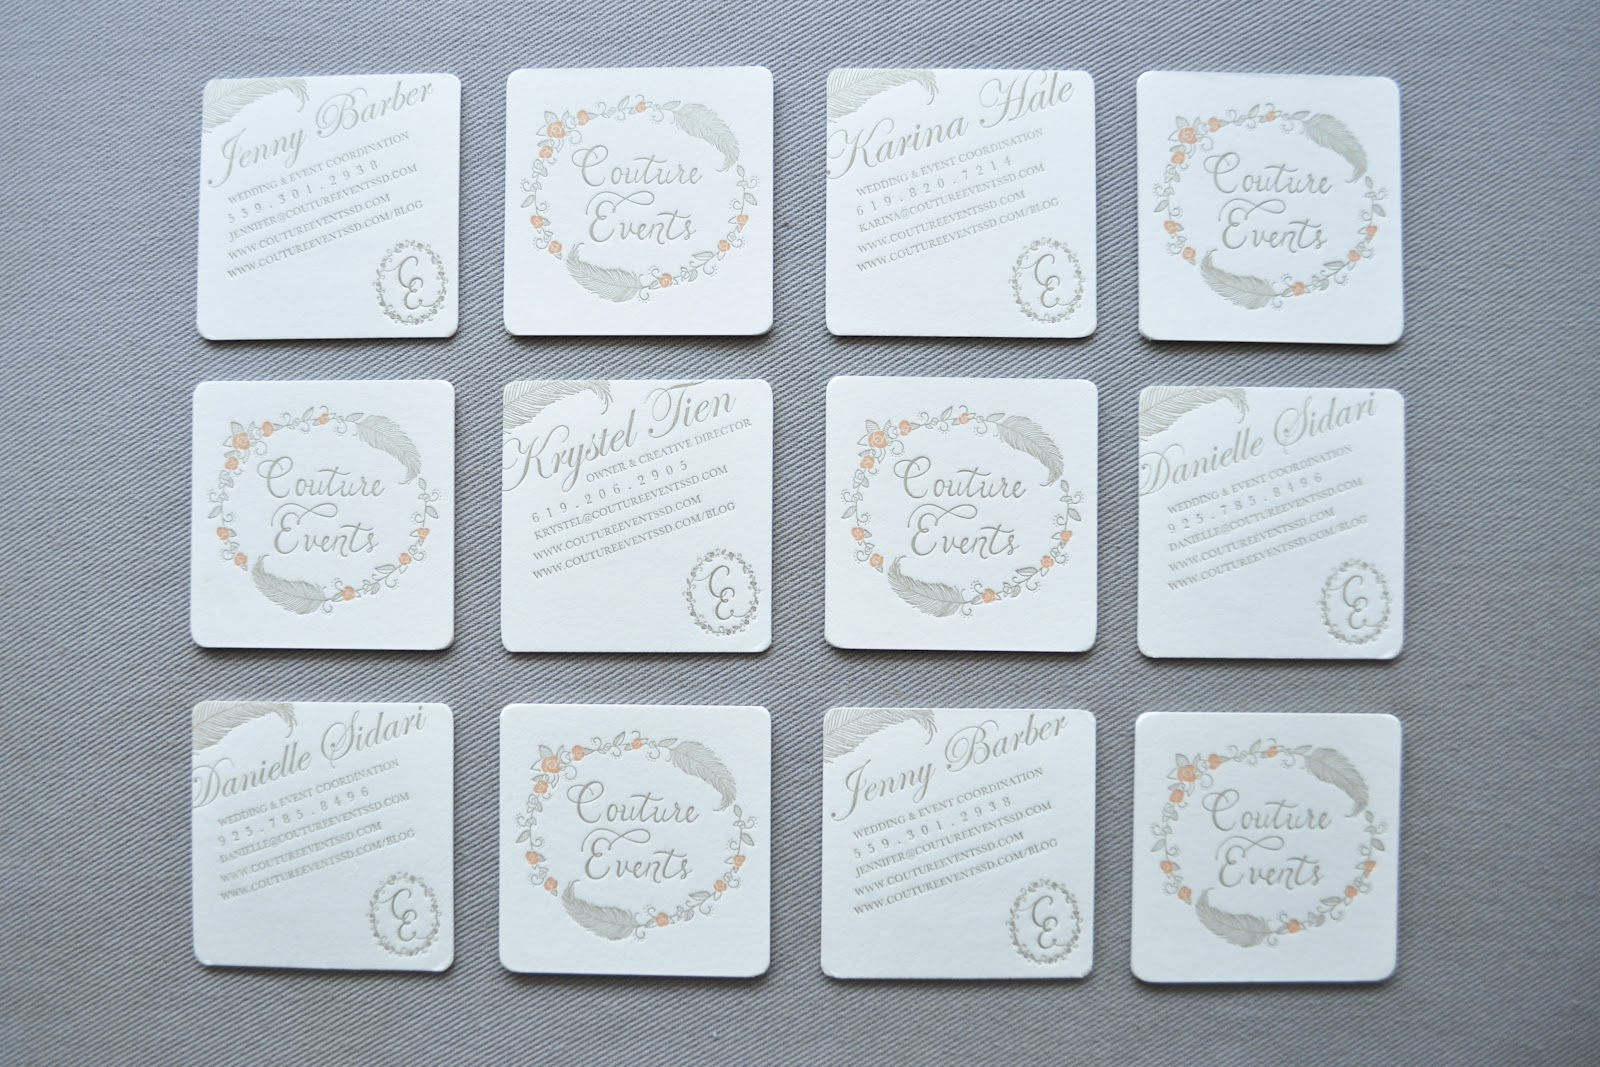 Dear lola letterpress business cards san diego and los angeles based event coordinators couture events these cards are double sided with 2 colors on one side and 1 color on the opposite reheart